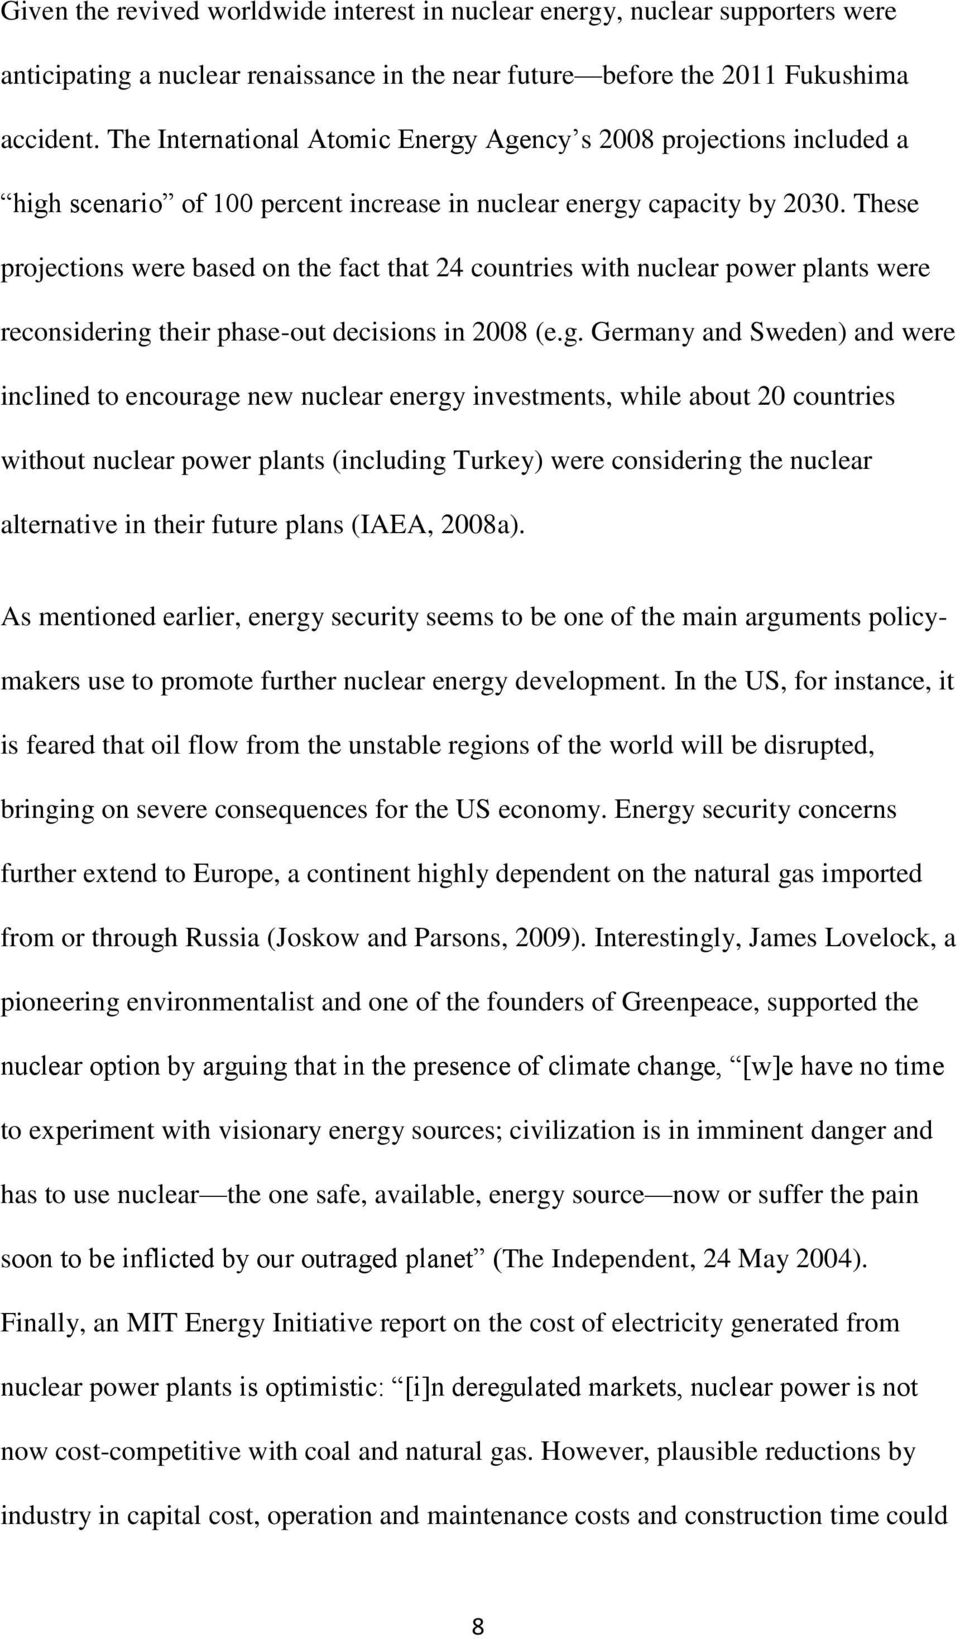 These projections were based on the fact that 24 countries with nuclear power plants were reconsidering